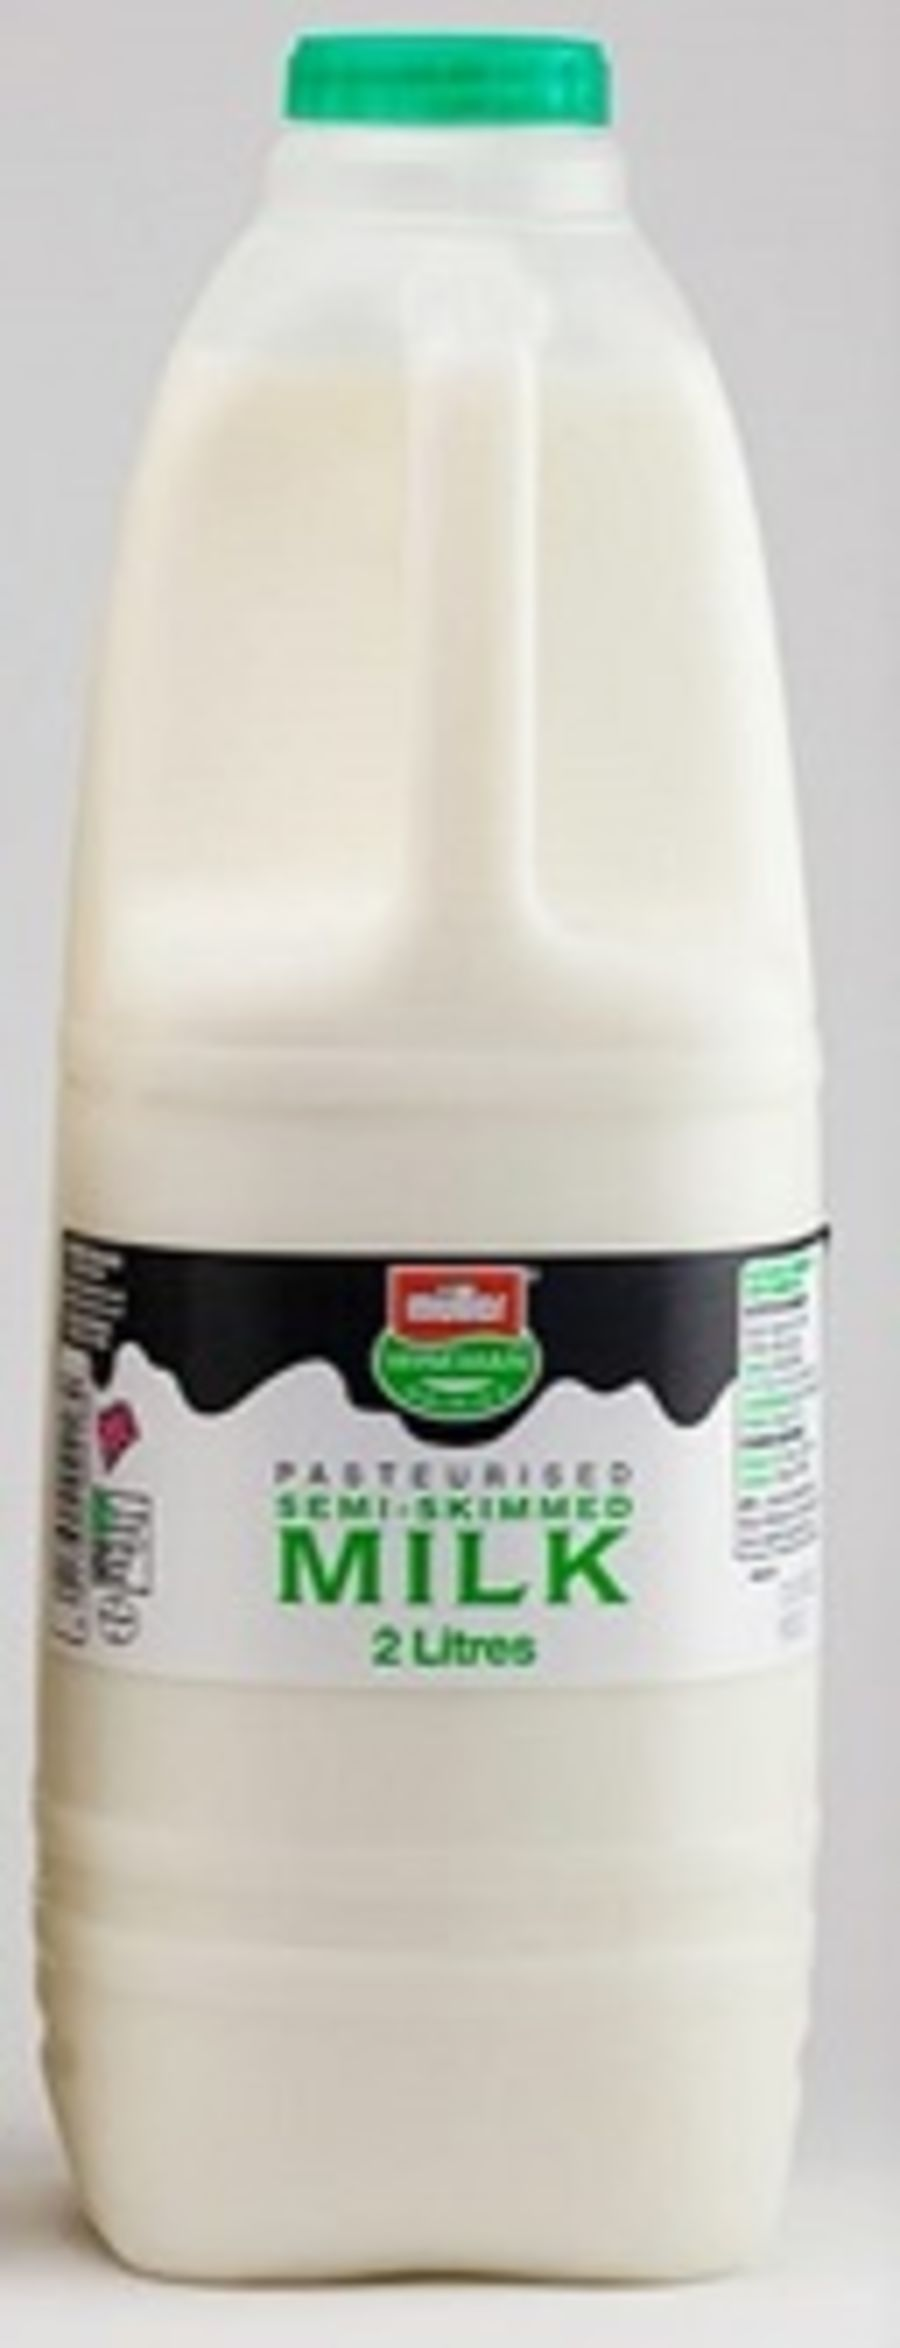 Milk 1 or 2 litre from